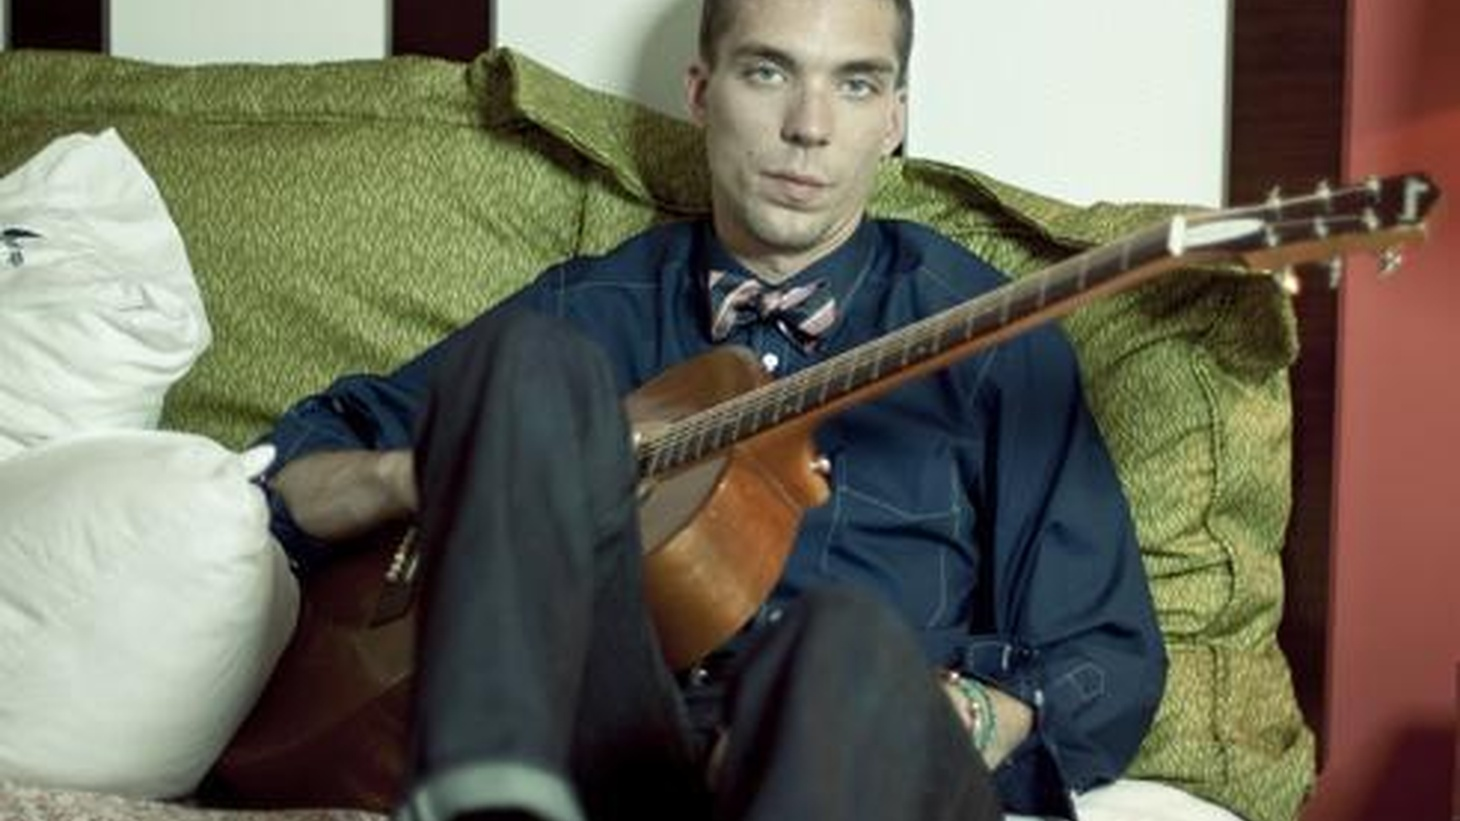 Justin Townes Earle is no stranger to music -- he's the son of Steve Earle and he's named after the late Townes Van Zandt -- so it's no wonder that he too became a musician. A rootsy player, Justin's songs are steeped in good ole Americana. Today's Top Tune is the title track from Harlem River Blues.